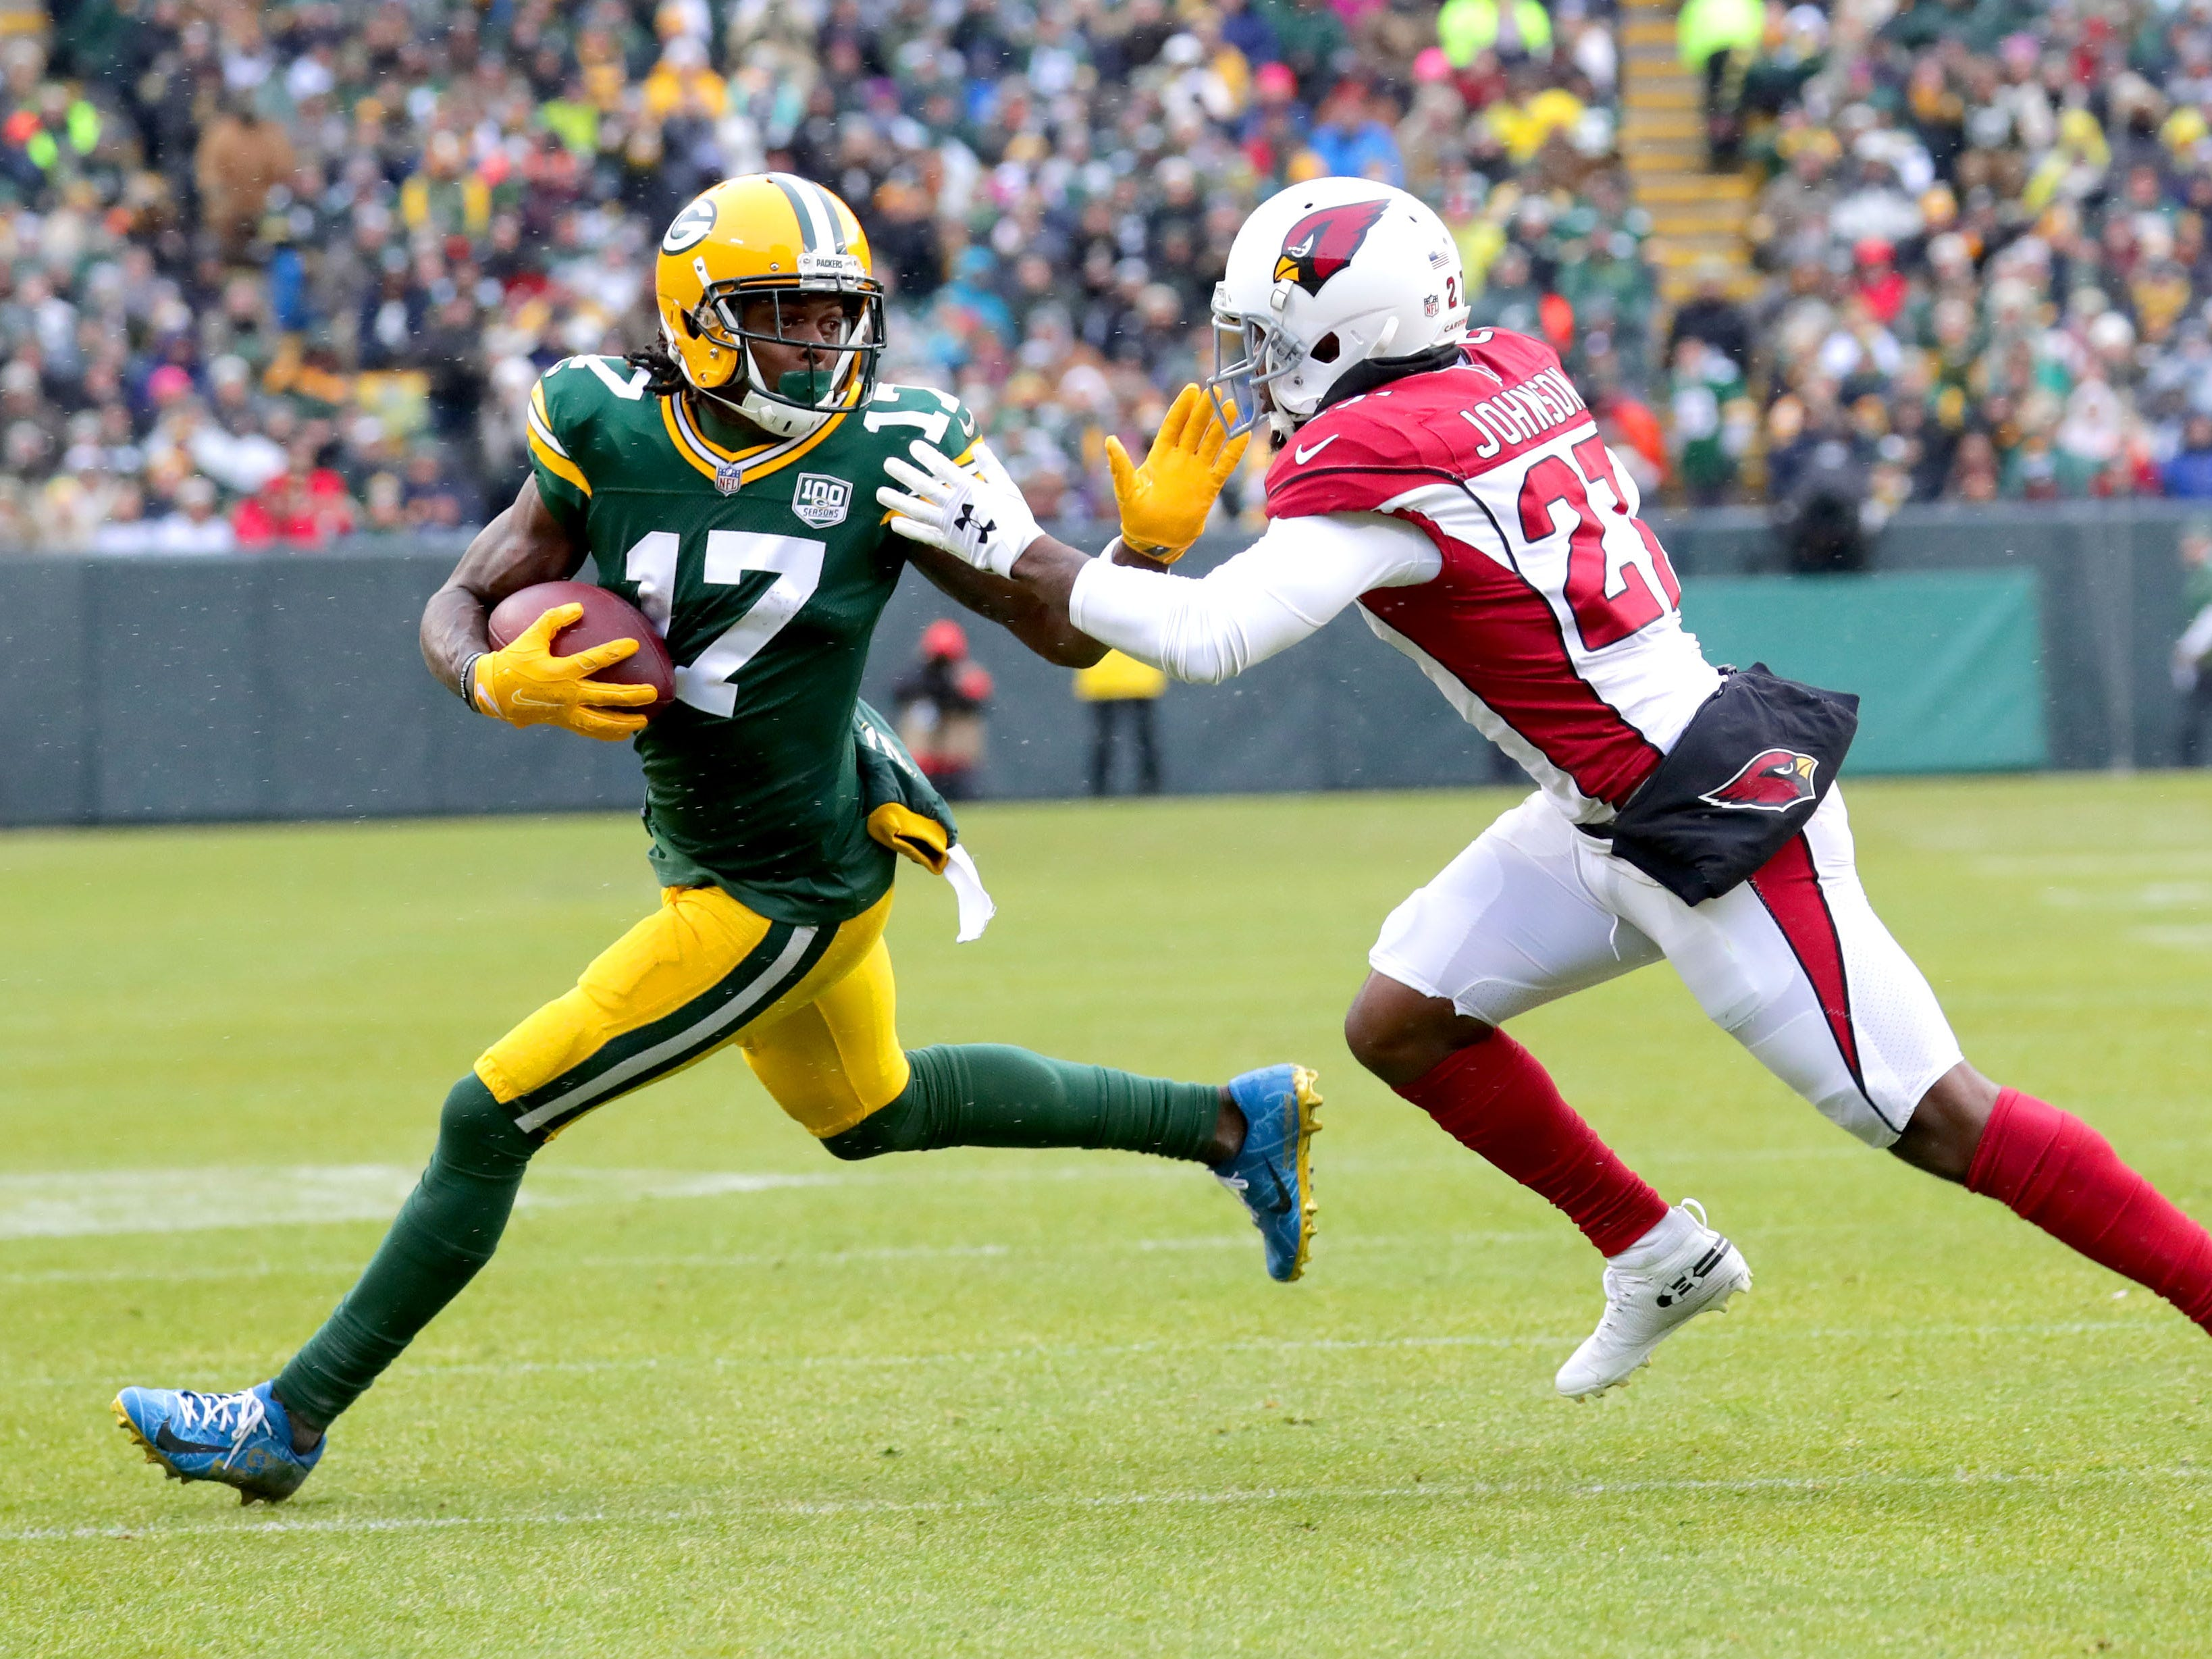 Green Bay Packers wide receiver Davante Adams (17) fights off Arizona Cardinals defensive back Leonard Johnson (27) after making a catch during the 2nd quarter of Green Bay Packers game against the Arizona Cardinals game Sunday, December 2, 2018 at Lambeau Field in Green Bay, Wis. Mike De Sisti / USA TODAY NETWORK-Wis